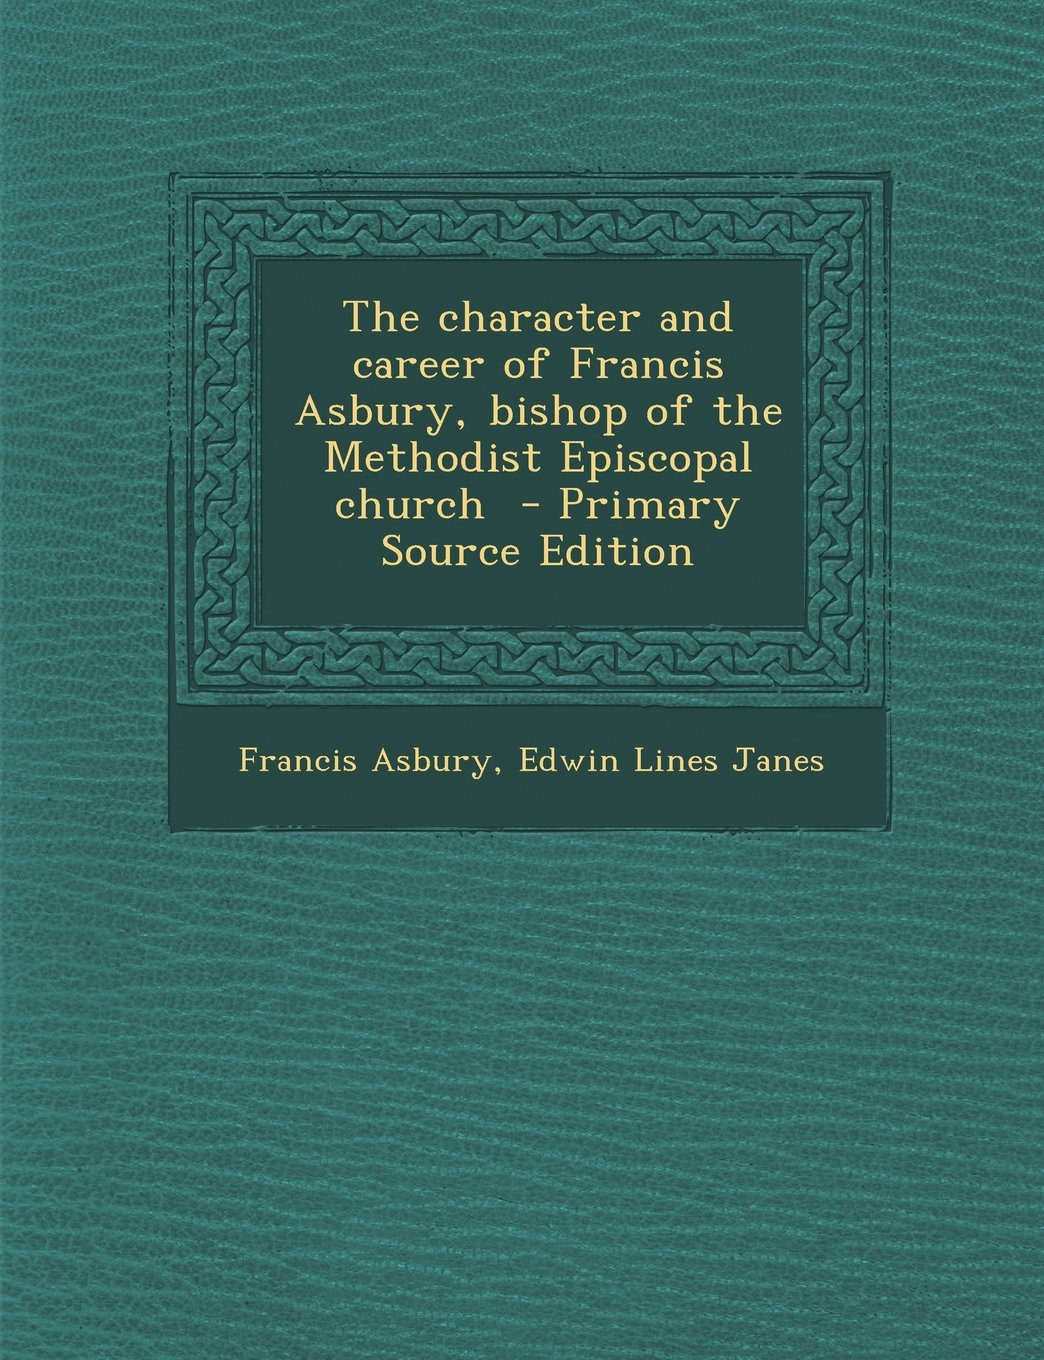 Read Online The character and career of Francis Asbury, bishop of the Methodist Episcopal church  - Primary Source Edition pdf epub